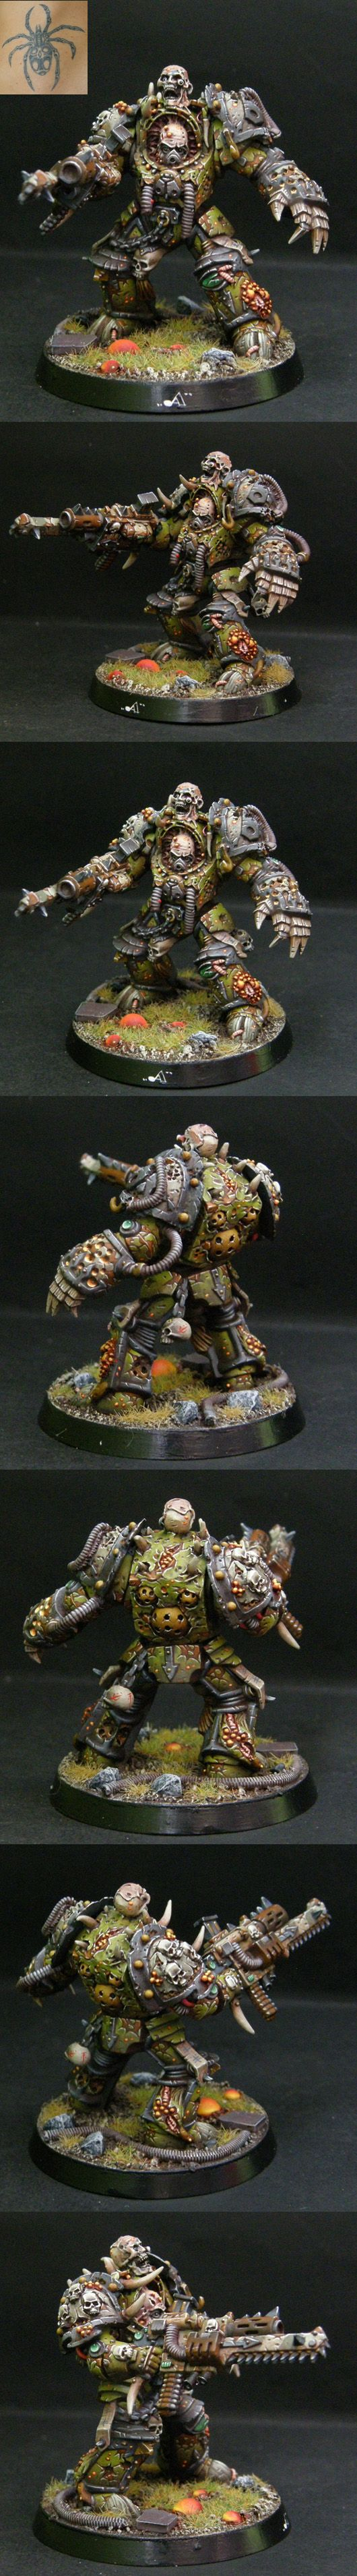 """Death Guard Terminator.The Death Guard are one of the Traitor Legions of Chaos Space Marines. They worship and devote themselves exclusively to the Chaos God Nurgle and as a result of his mutational """"gifts"""" they have become Plague Marines; Astartes who are eternally rotting away within their Power Armour and infected with every known form of disease and decay."""